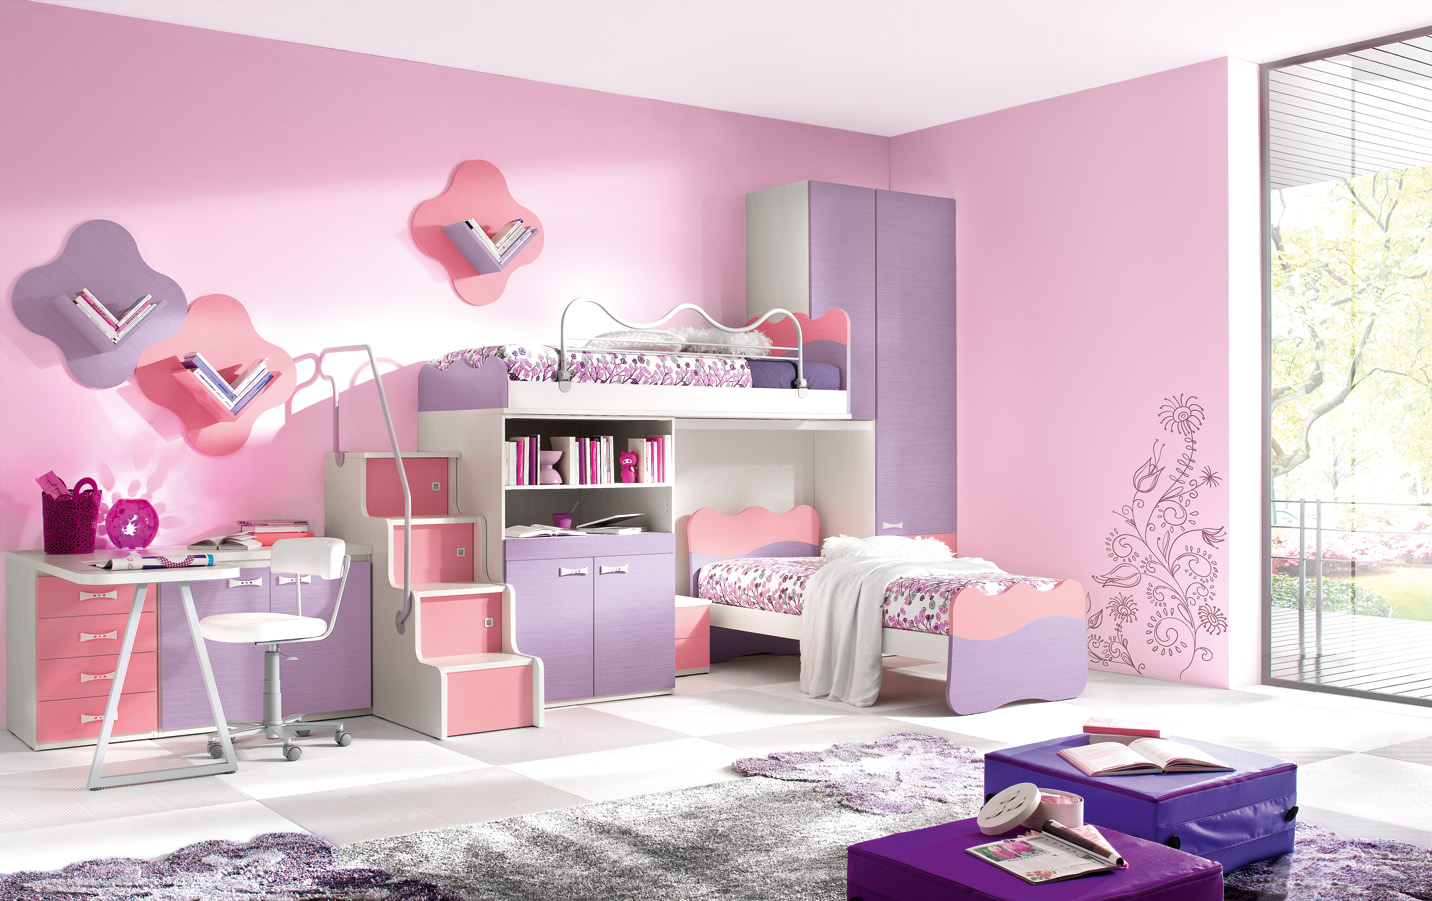 Enchanting Wall Mural Decorating Cute Bedroom Ideas with Lovely Bunk Beds and white Study Desk